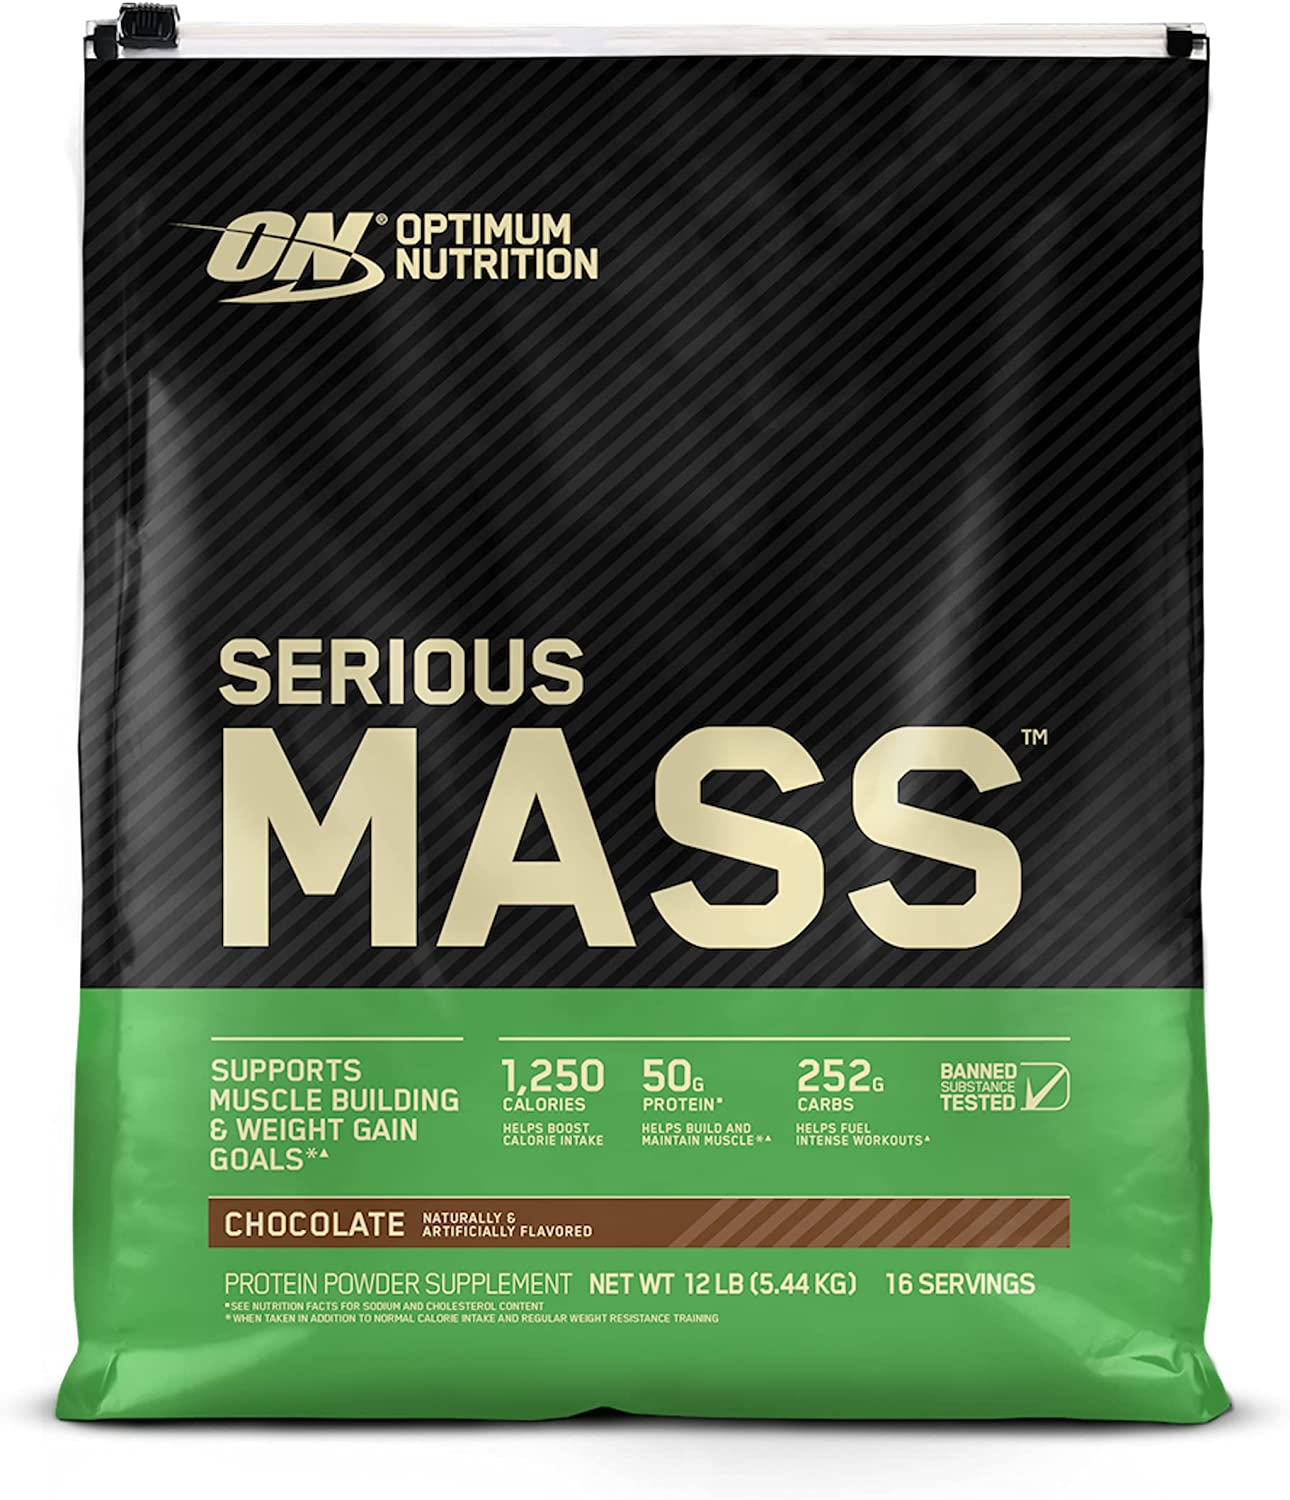 Max 89% OFF Optimum Nutrition Serious Mass Weight Gainer Powder Vit Protein Super Special SALE held